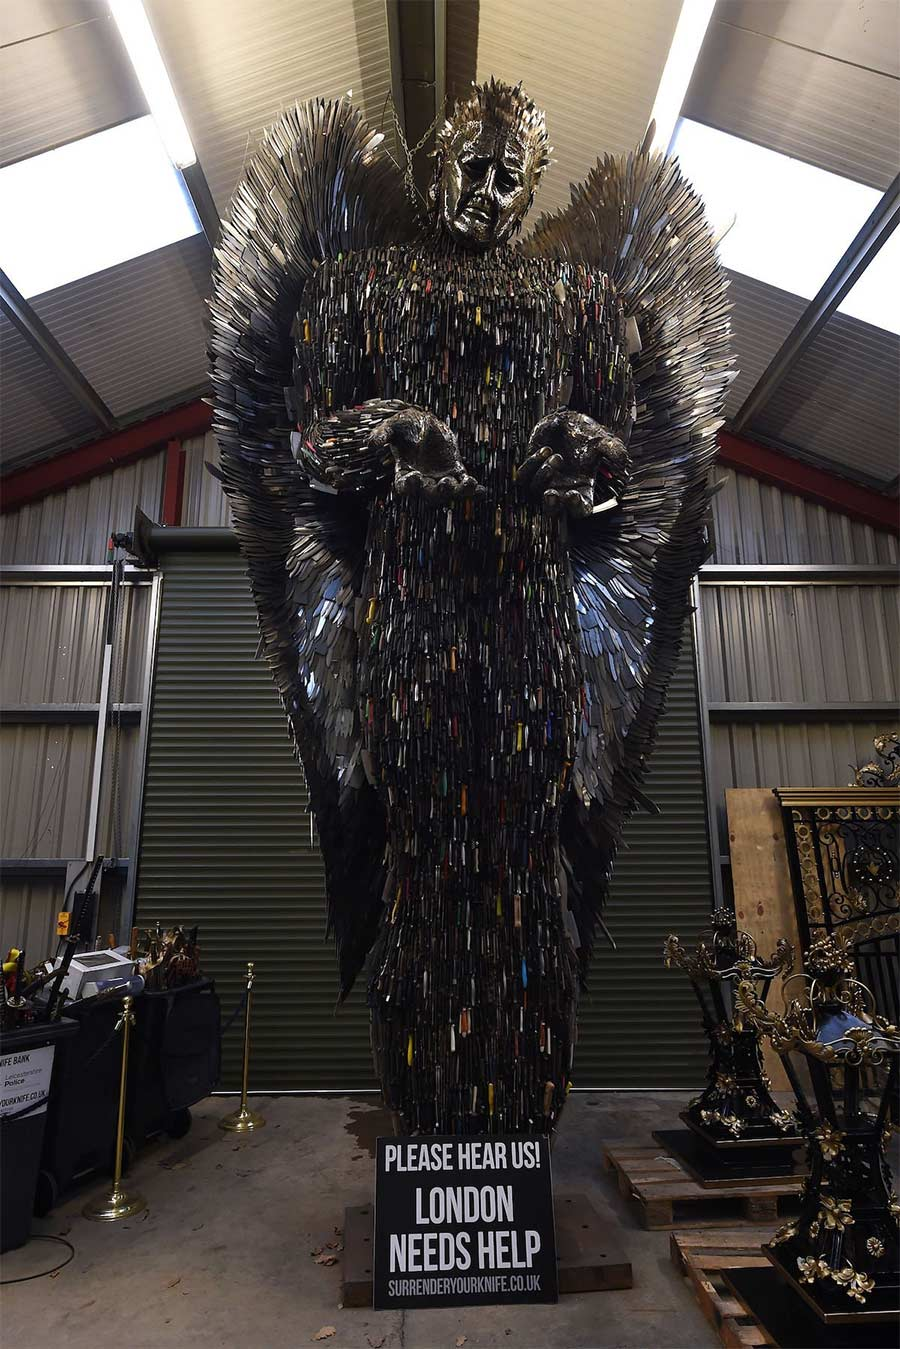 Der 'Knife Angel' stammt aus 100.000 sichergestellten Messern knife-angel_01